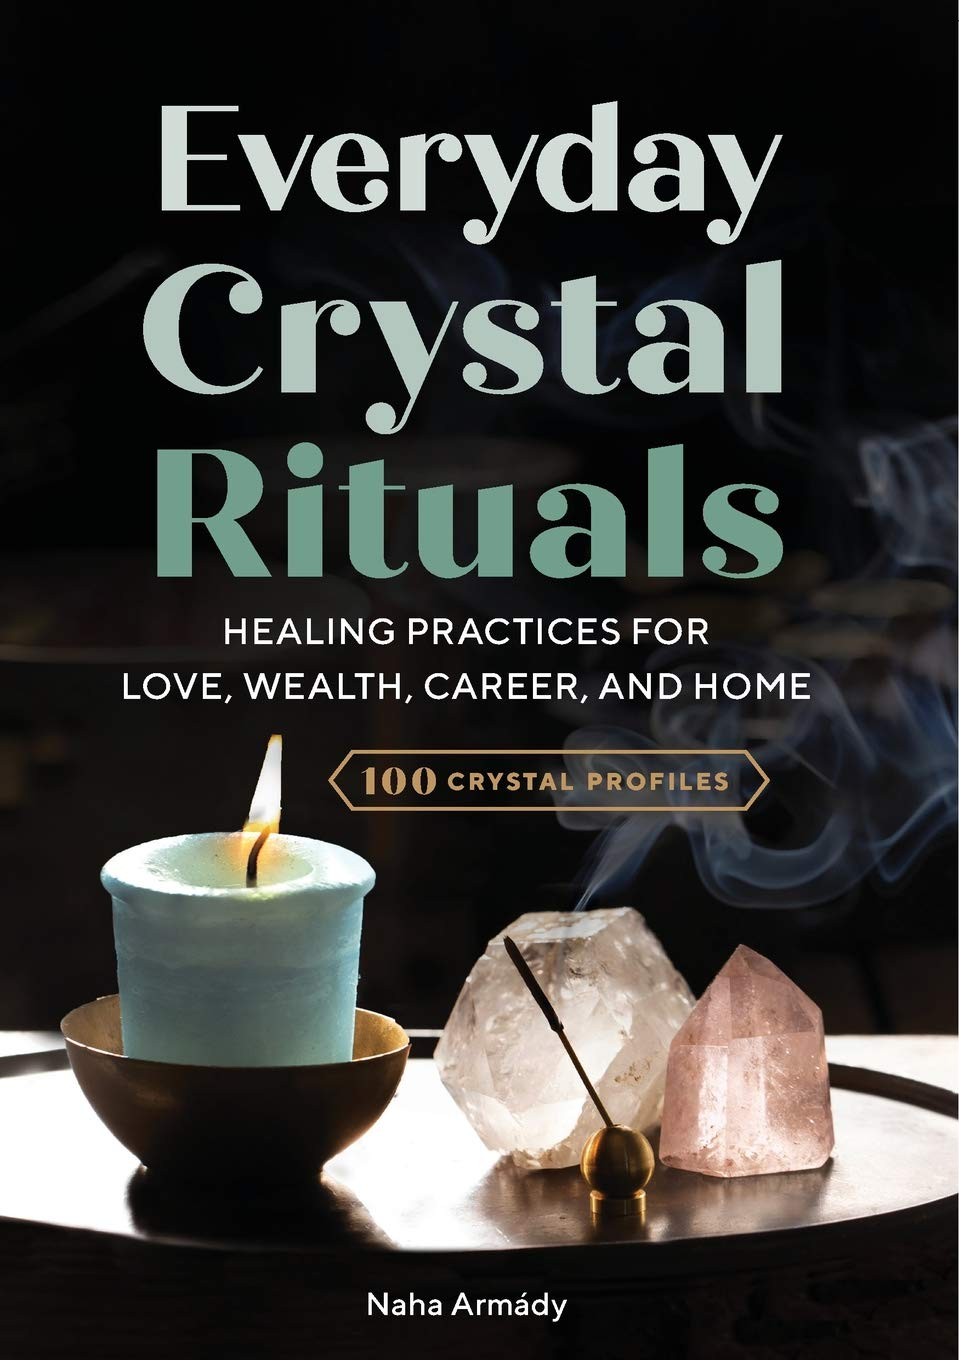 Everyday Crystal Rituals by Naha Armády